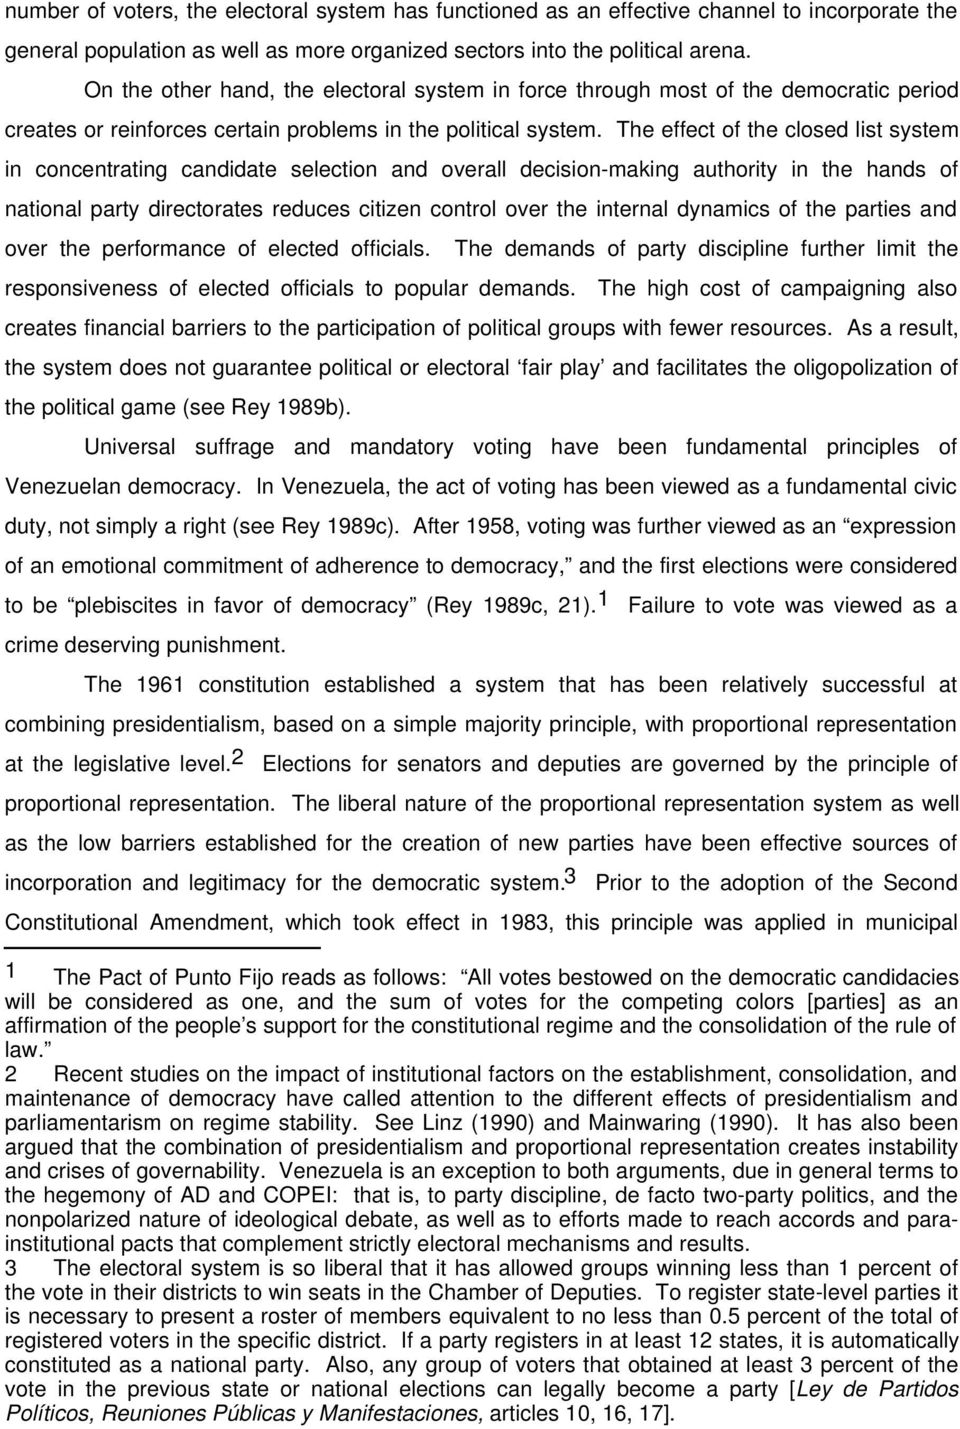 The effect of the closed list system in concentrating candidate selection and overall decision-making authority in the hands of national party directorates reduces citizen control over the internal